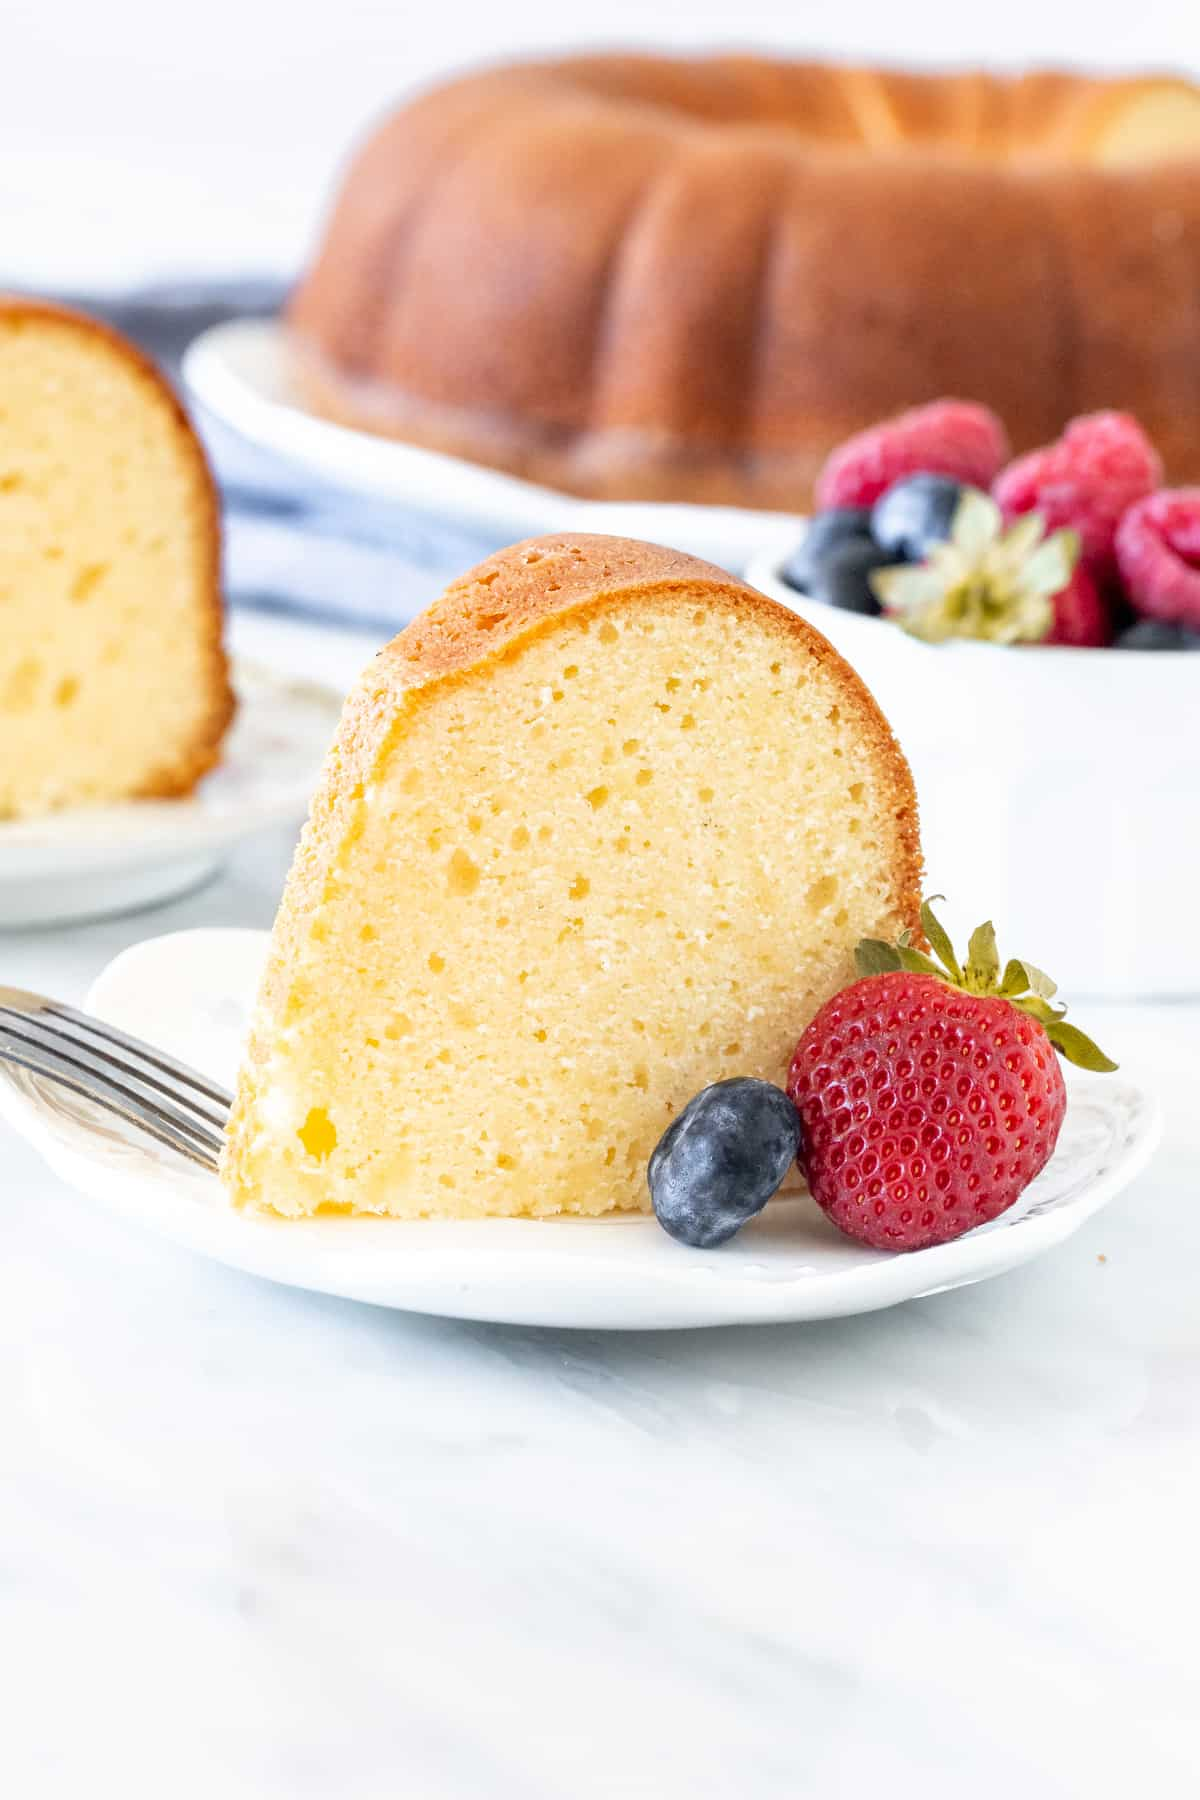 Slice of moist pound cake with berries on a plate.